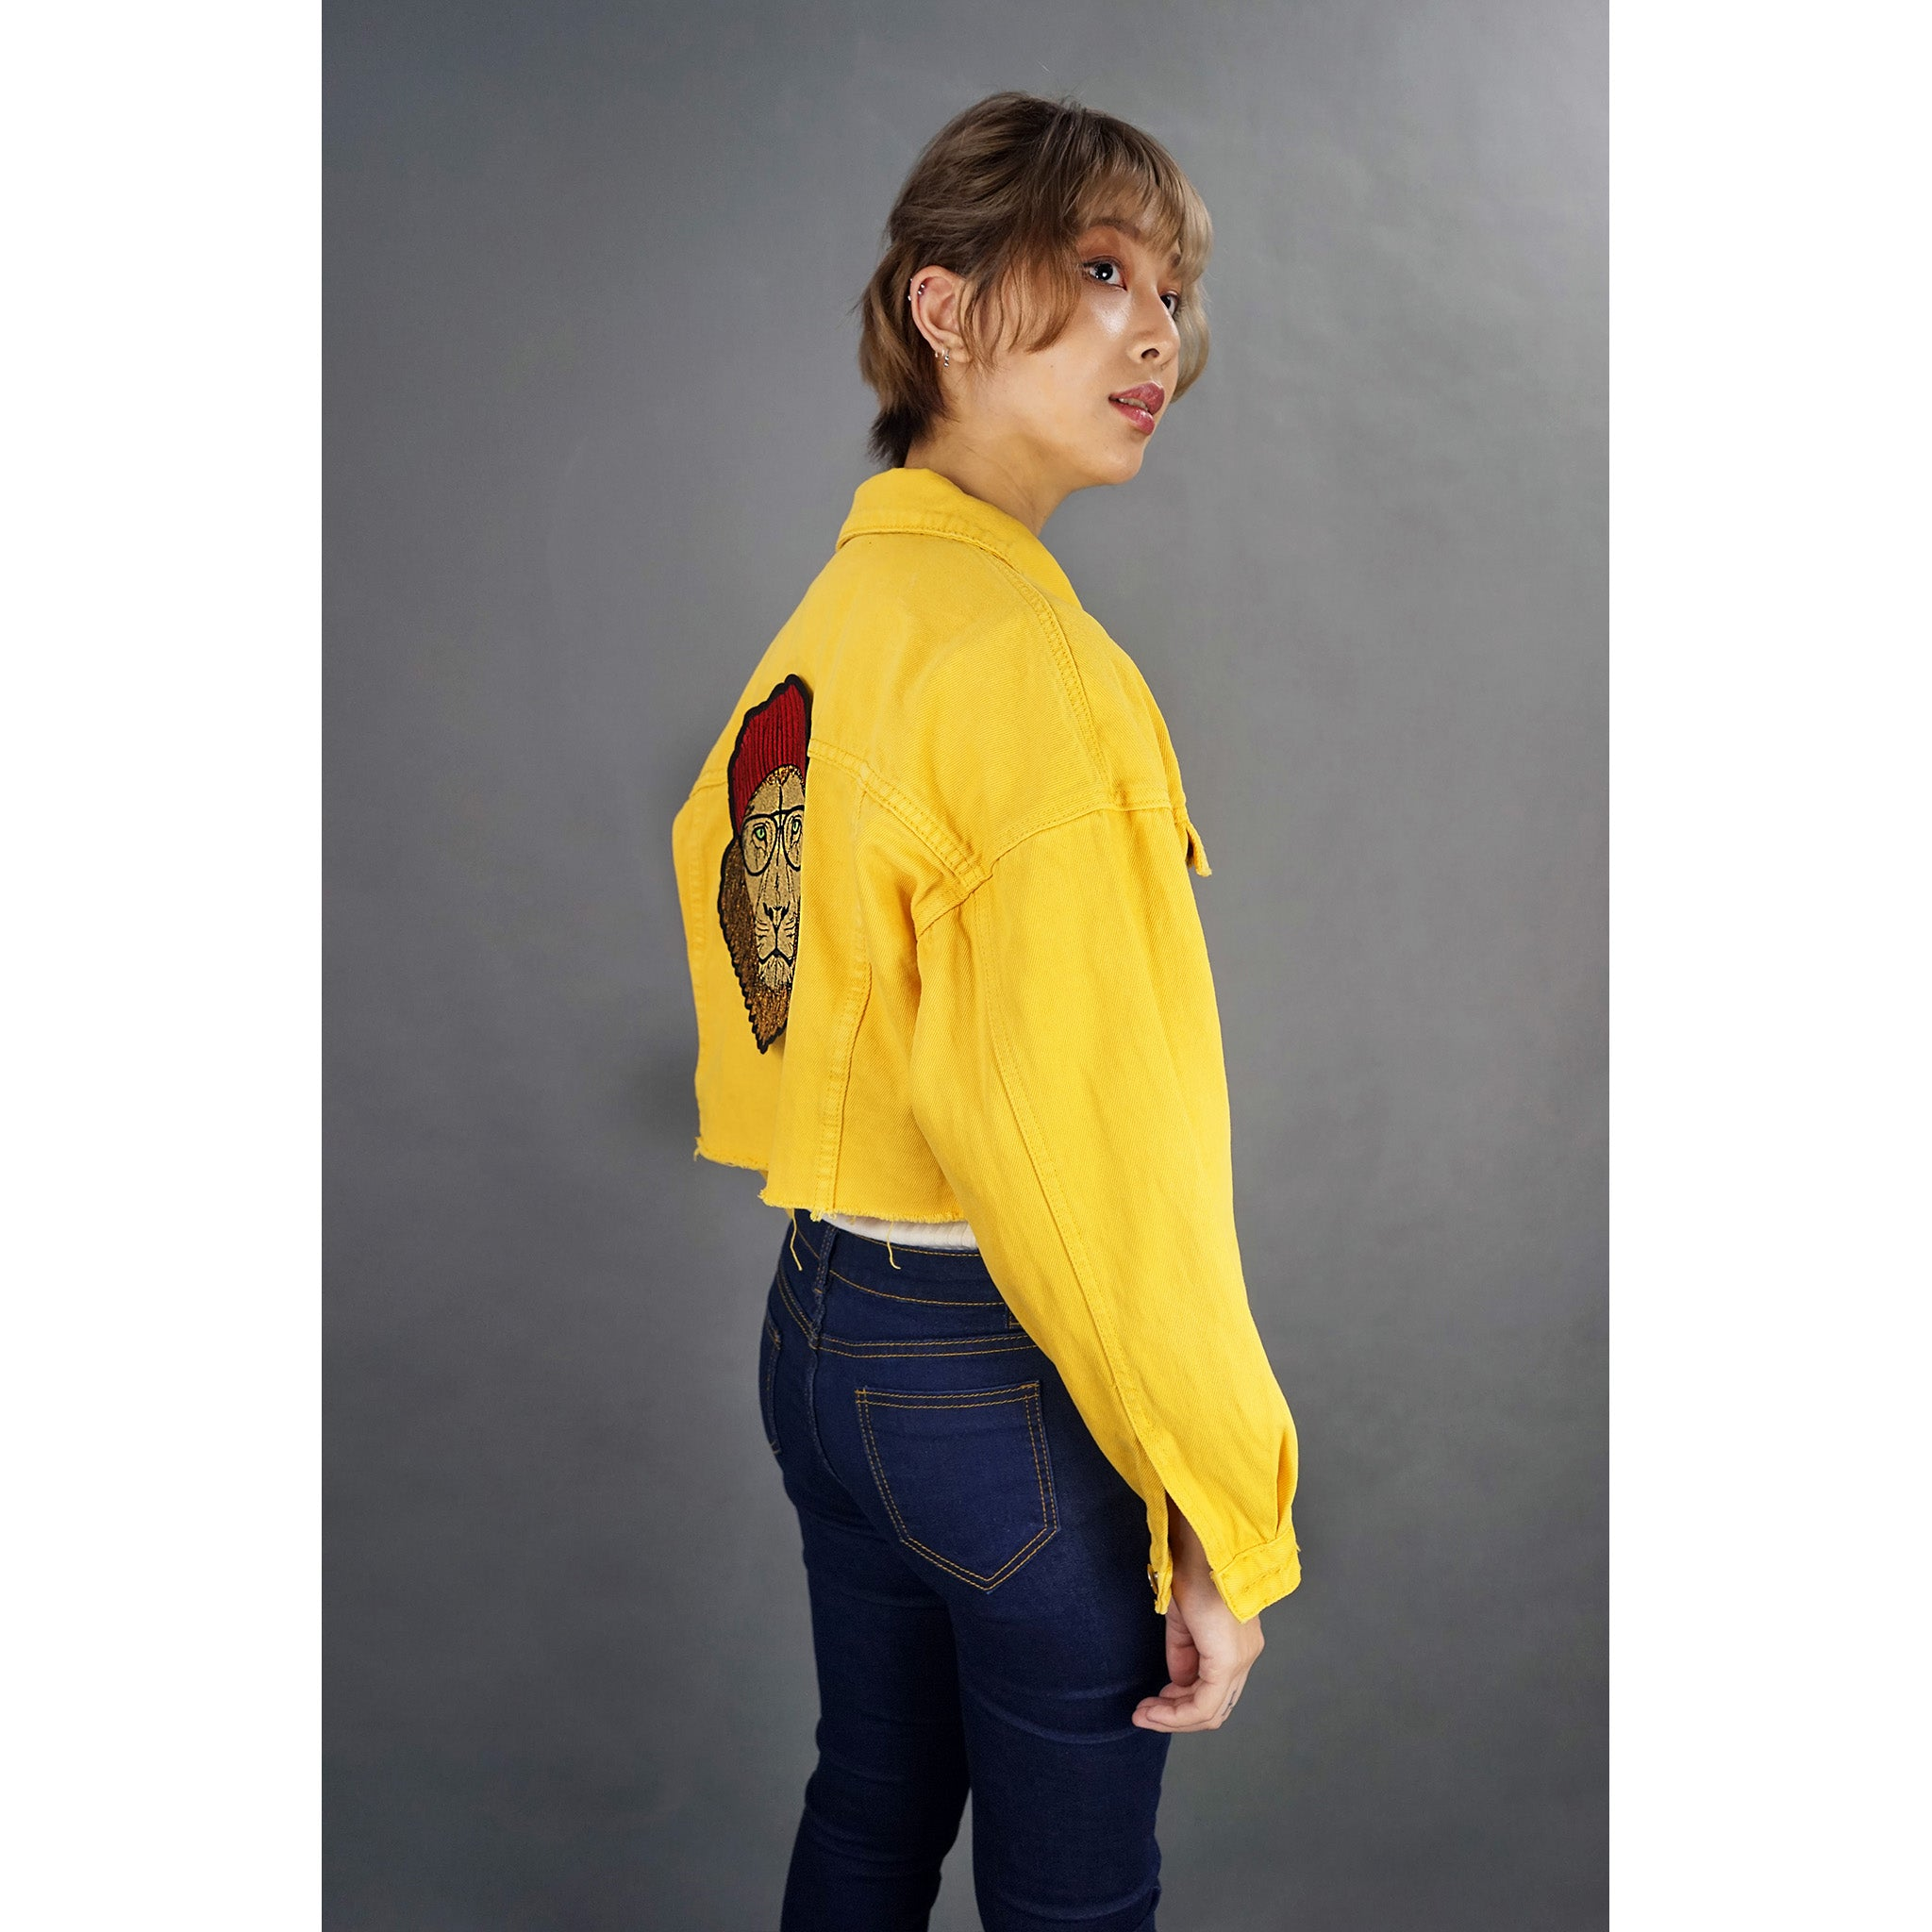 Beauty & The Beast Jacket